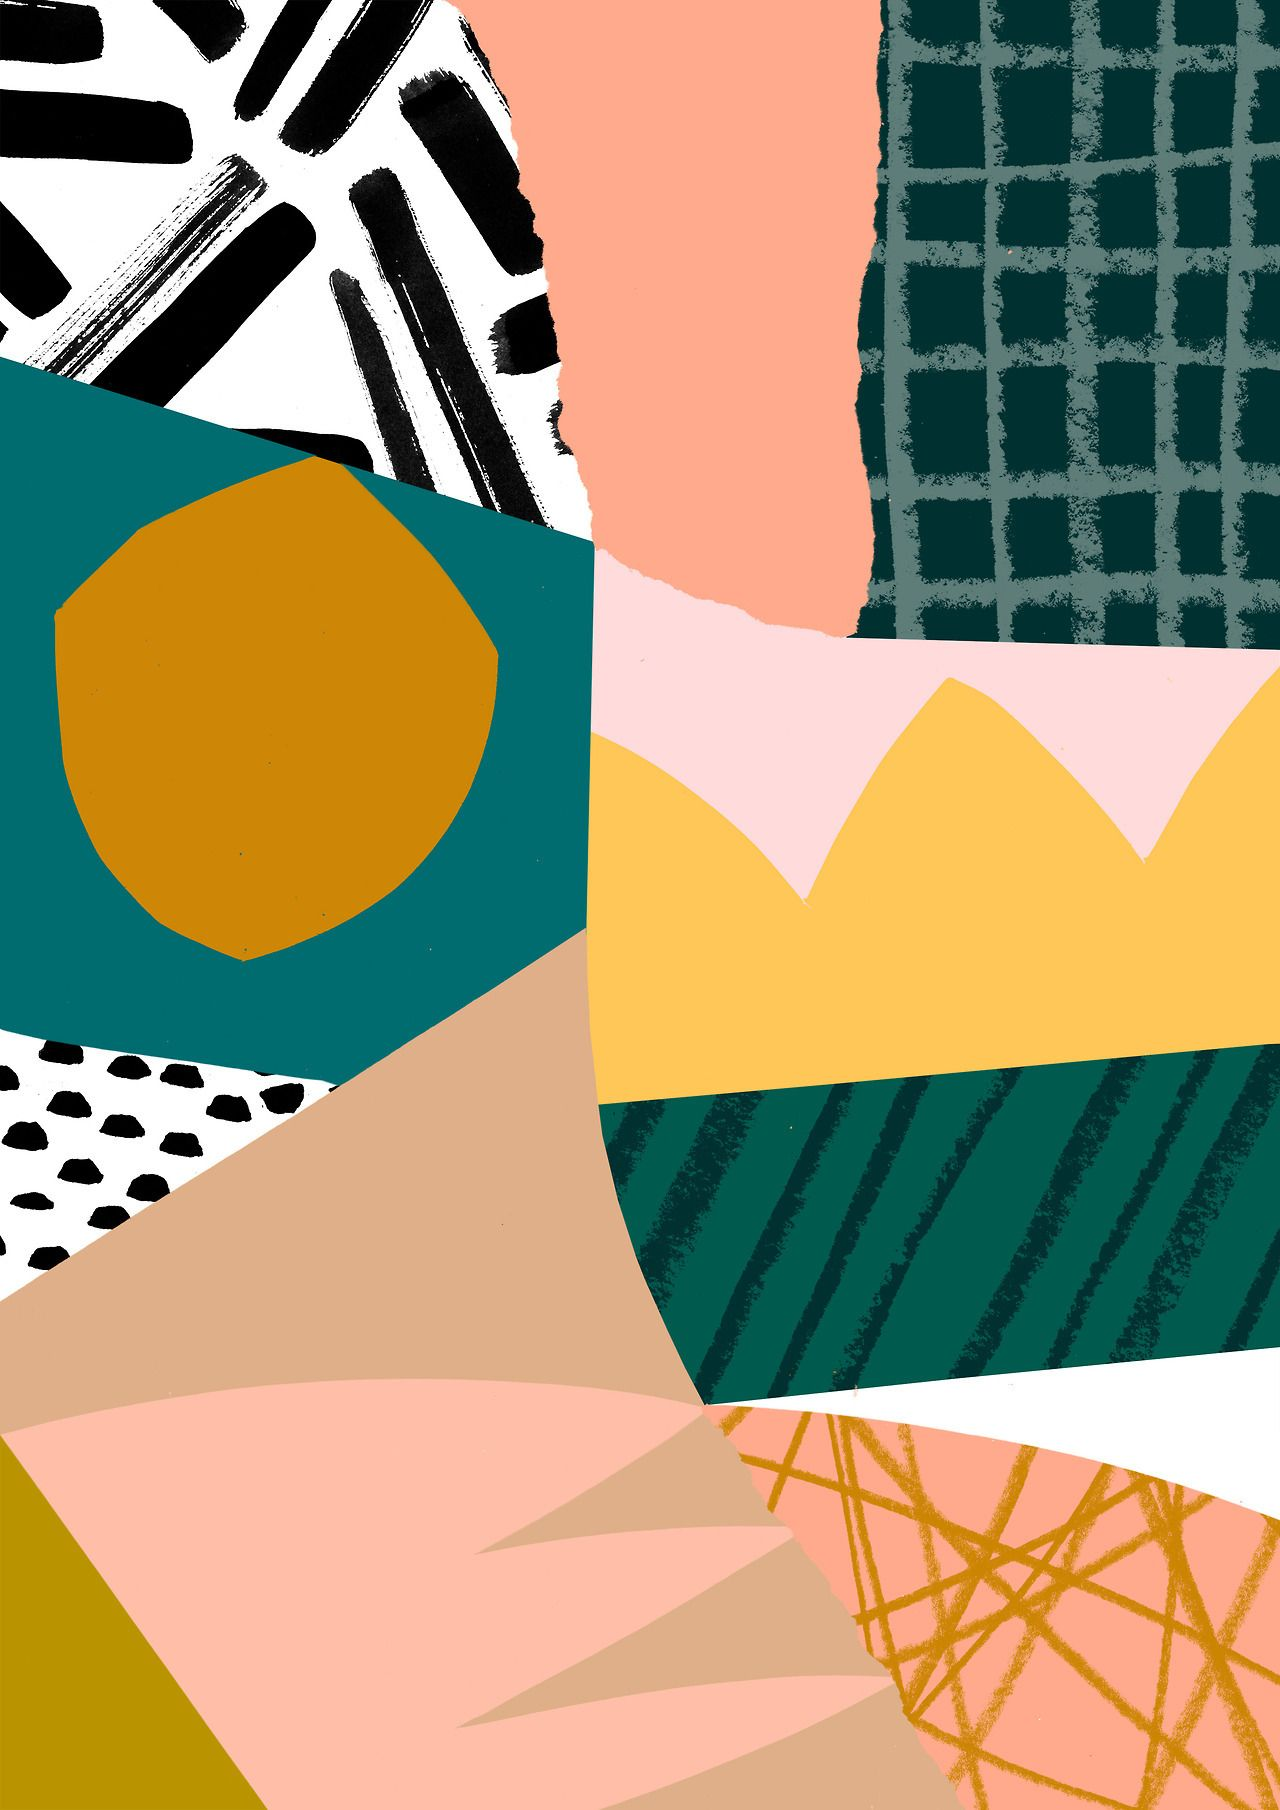 Design Entry For Slowdown Studio S Blanket Competition Abstract Art Design Collage Contemporary Abstract Cute Patterns Wallpaper Abstract Prints